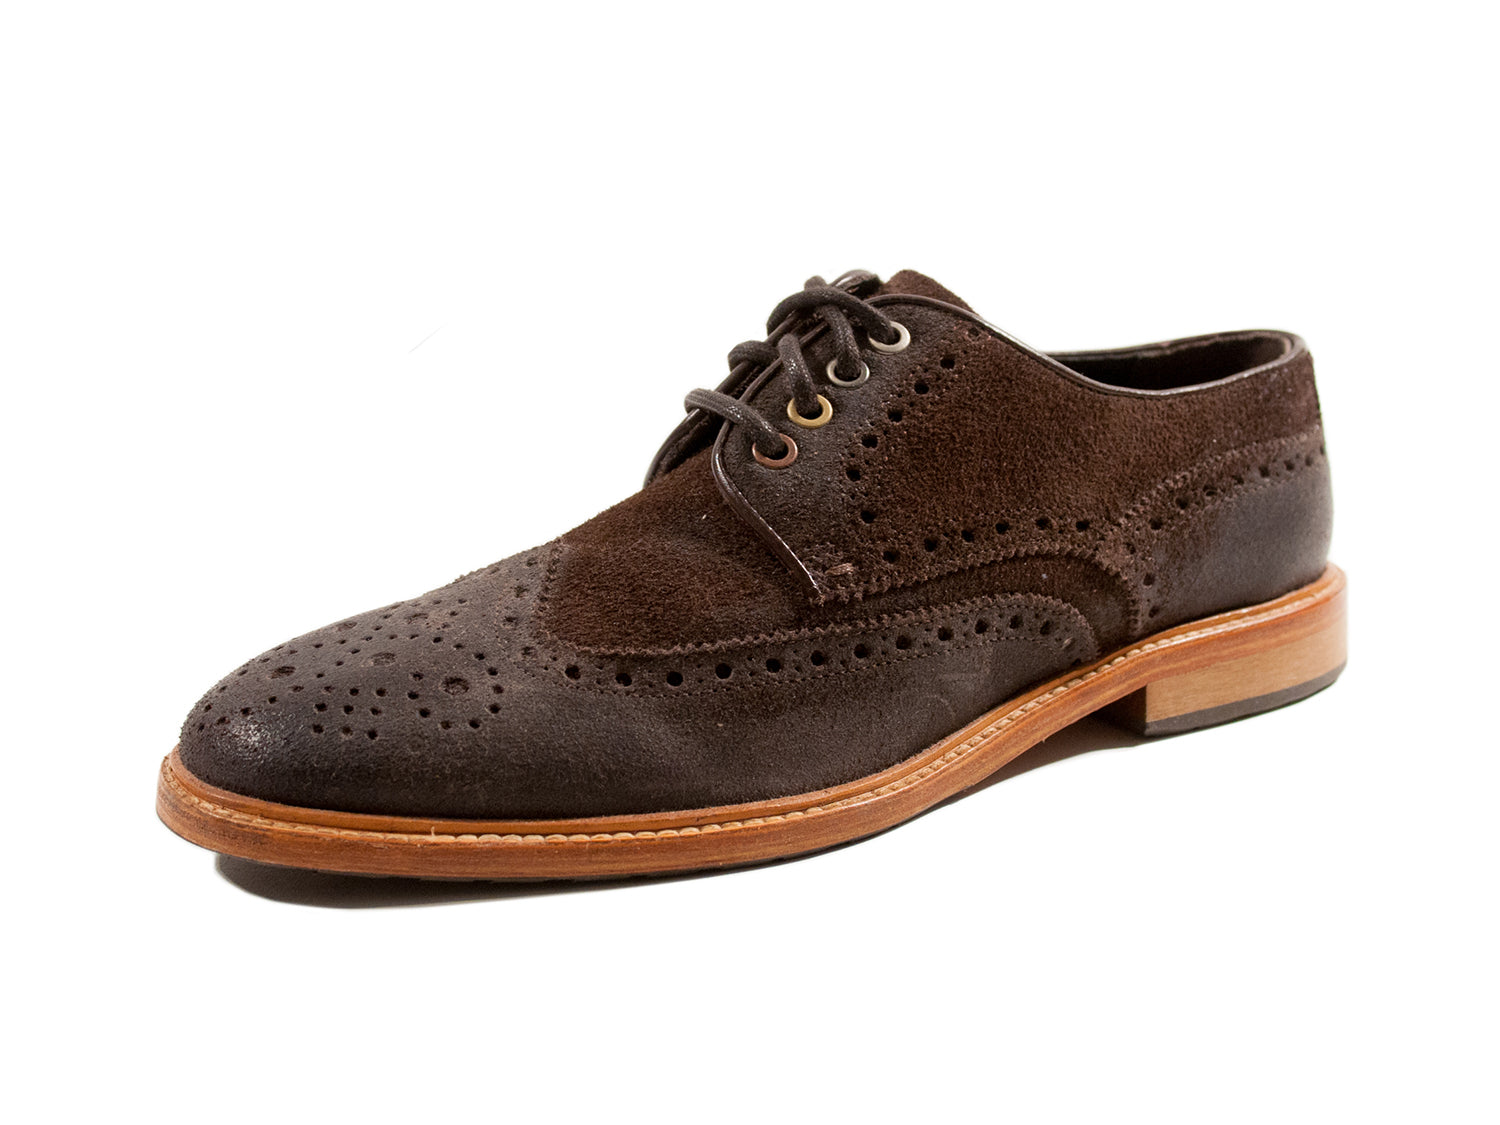 Hugo Boss Dark Brown Suede Wing Tip Shoes. Luxmrkt.com menswear consignment Edmonton